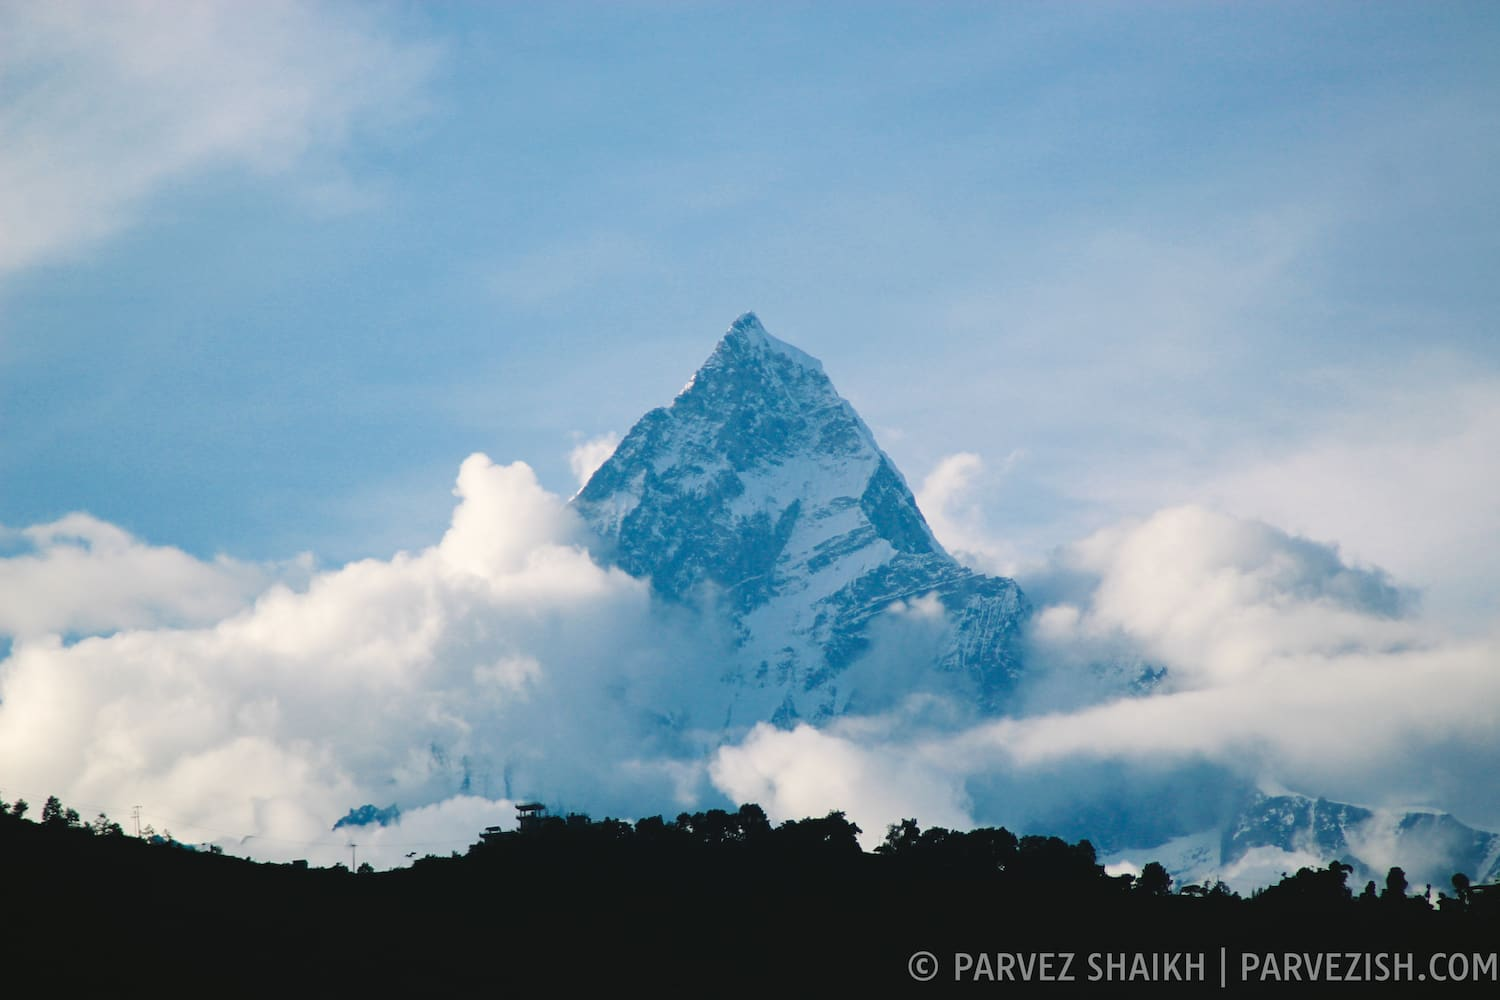 The Fishtail Mountain in Pokhara, Nepal